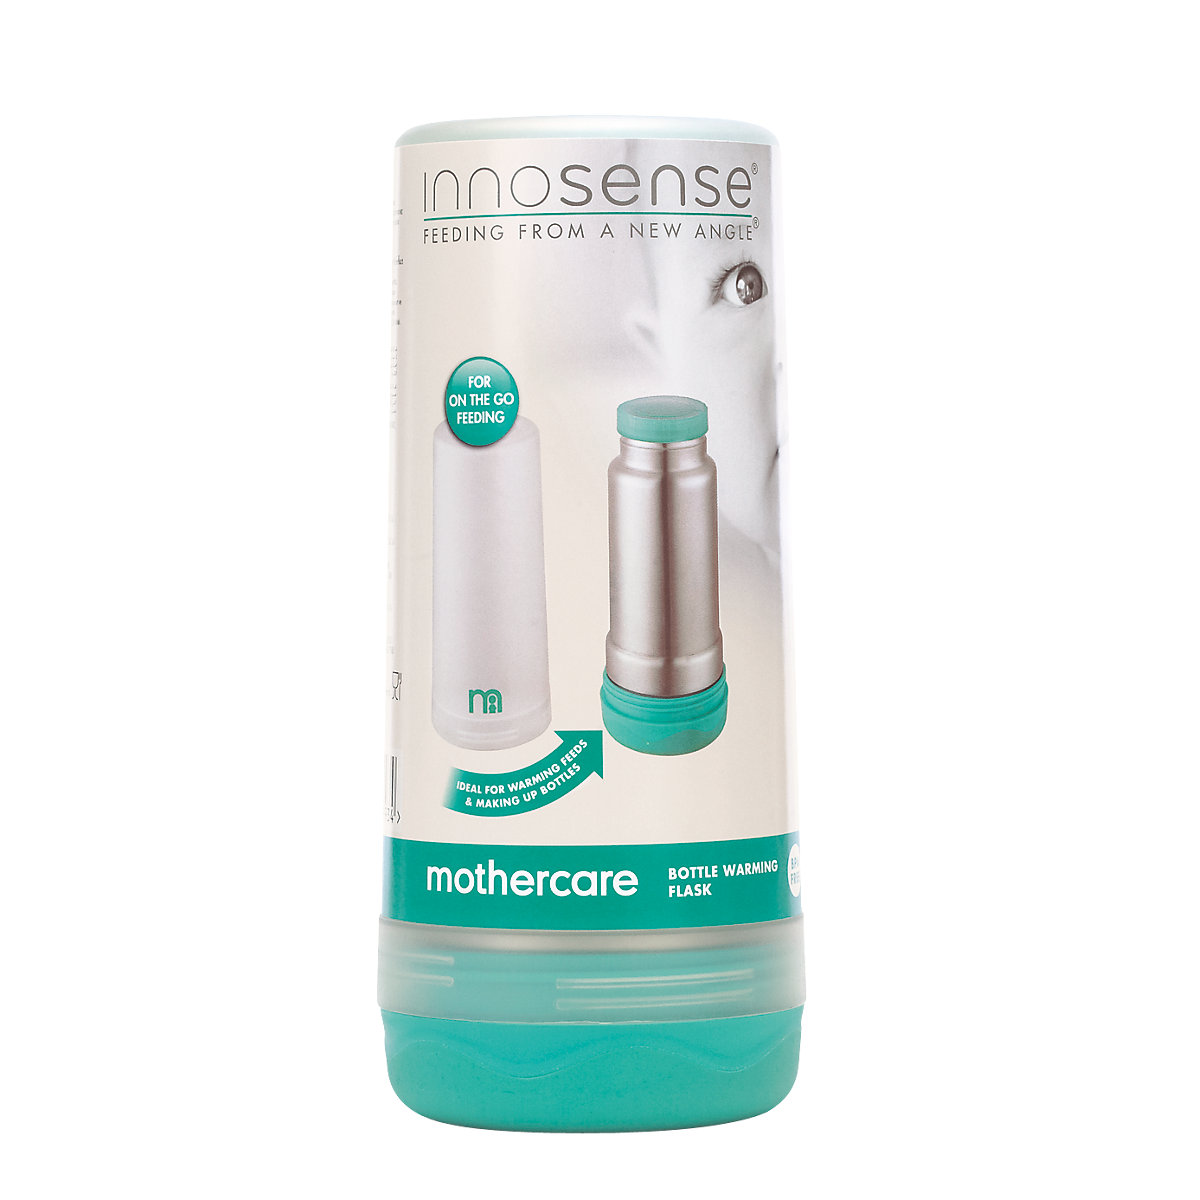 Innosense® Bottle Warming Flask - Warming Gifts